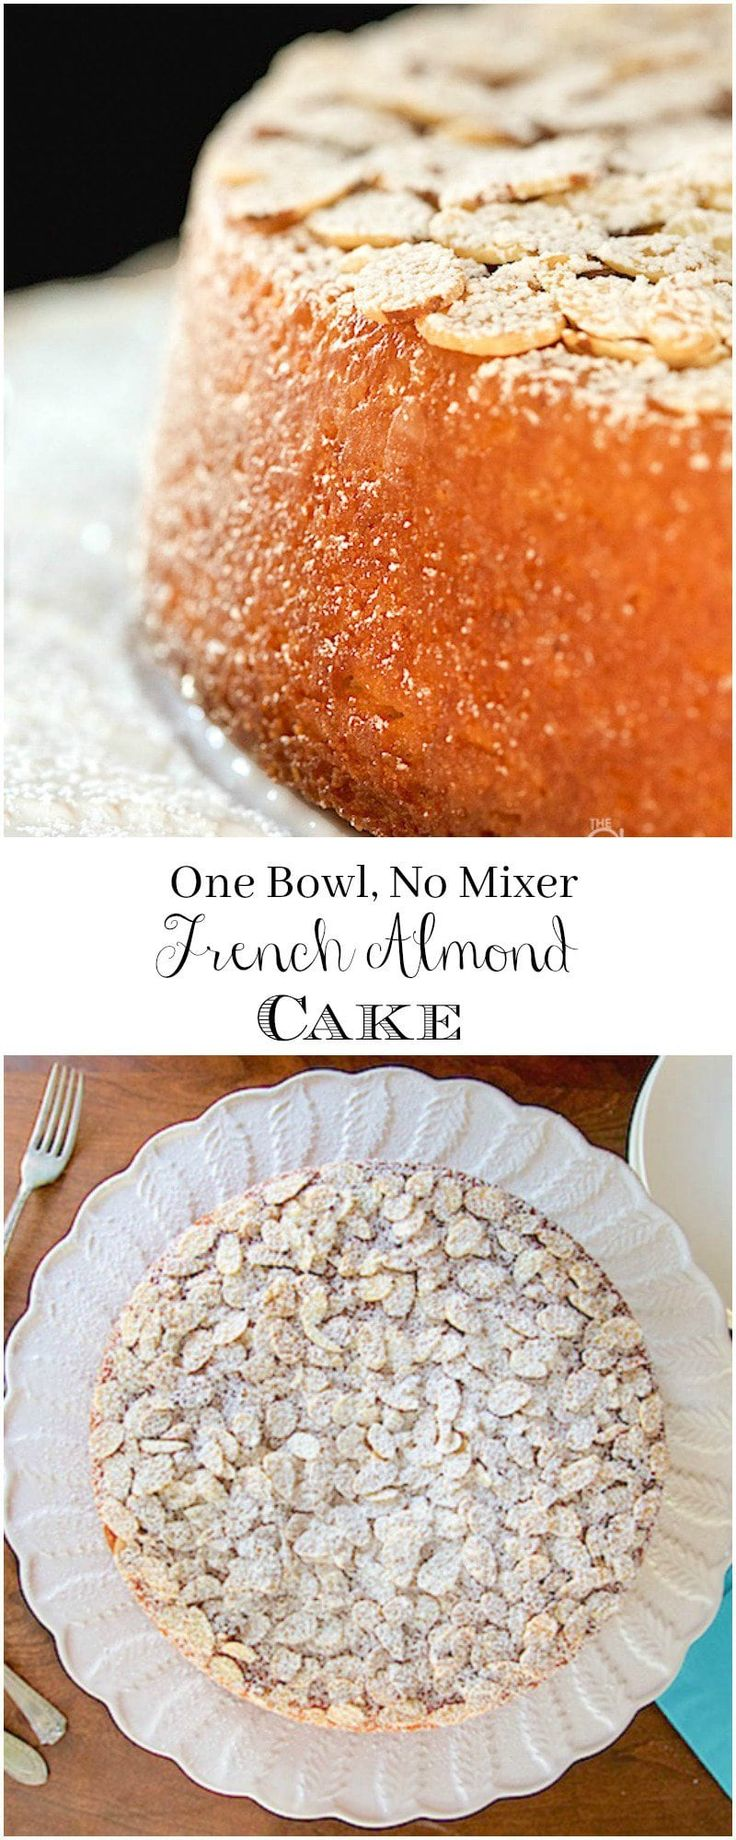 This+French+Almond+Cake+is+incredibly+delicious+and+incredibly+easy.+One-bowl,+no-mixer,+just-a-few-minutes-to-throw+together!  +via+@cafesucrefarine